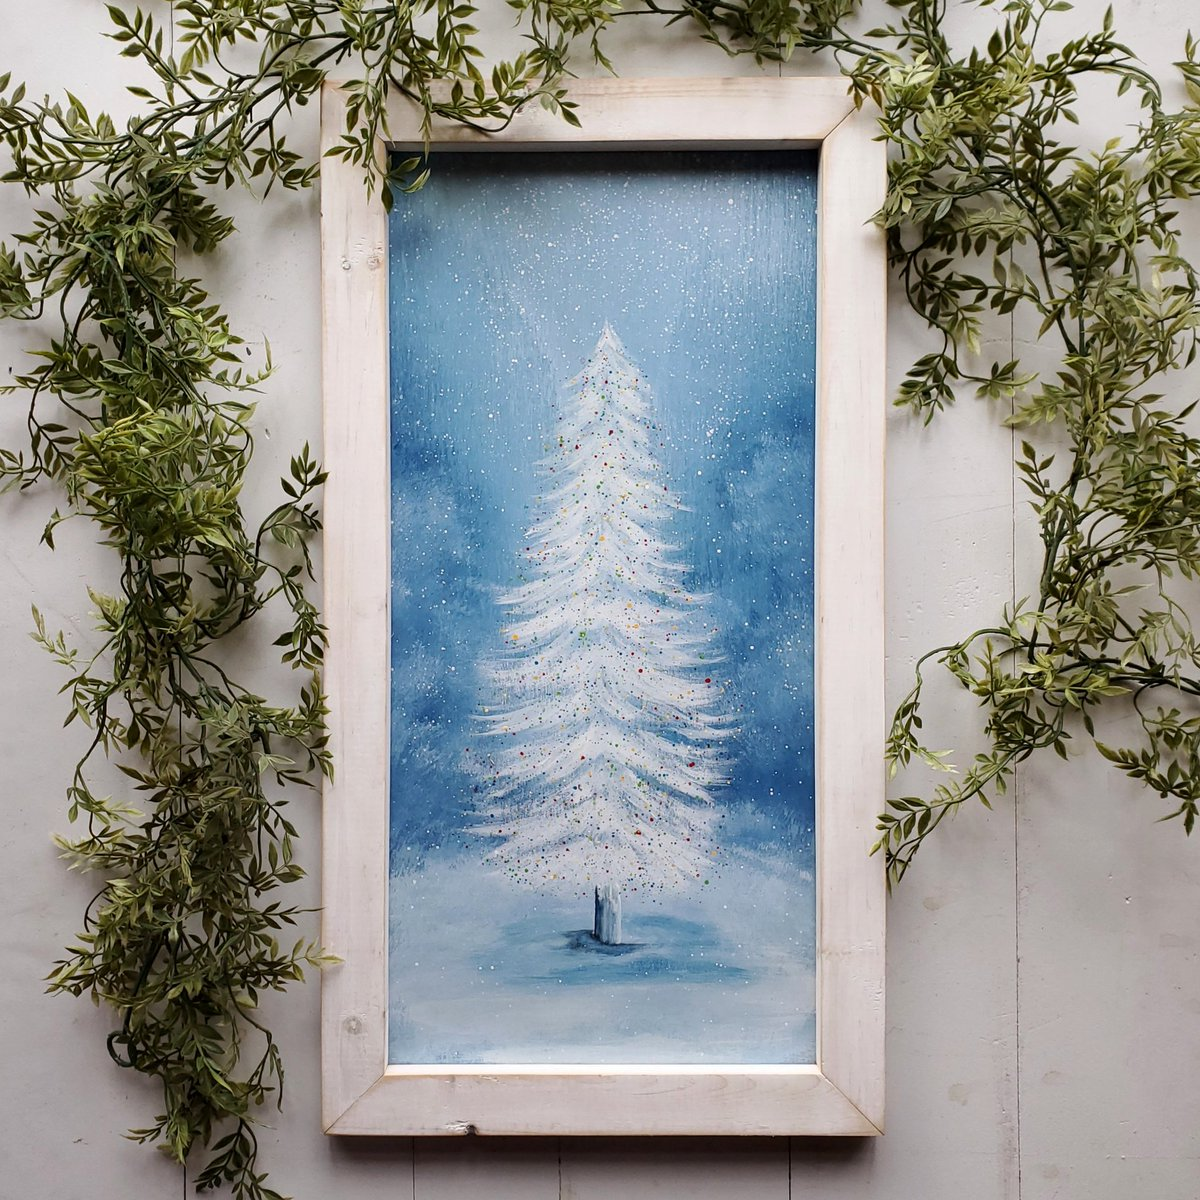 20% off Christmas Sale...check out the deals at  #smallbusiness #sale #shopnow #Christmas #painting #art #handmade   via @Etsy